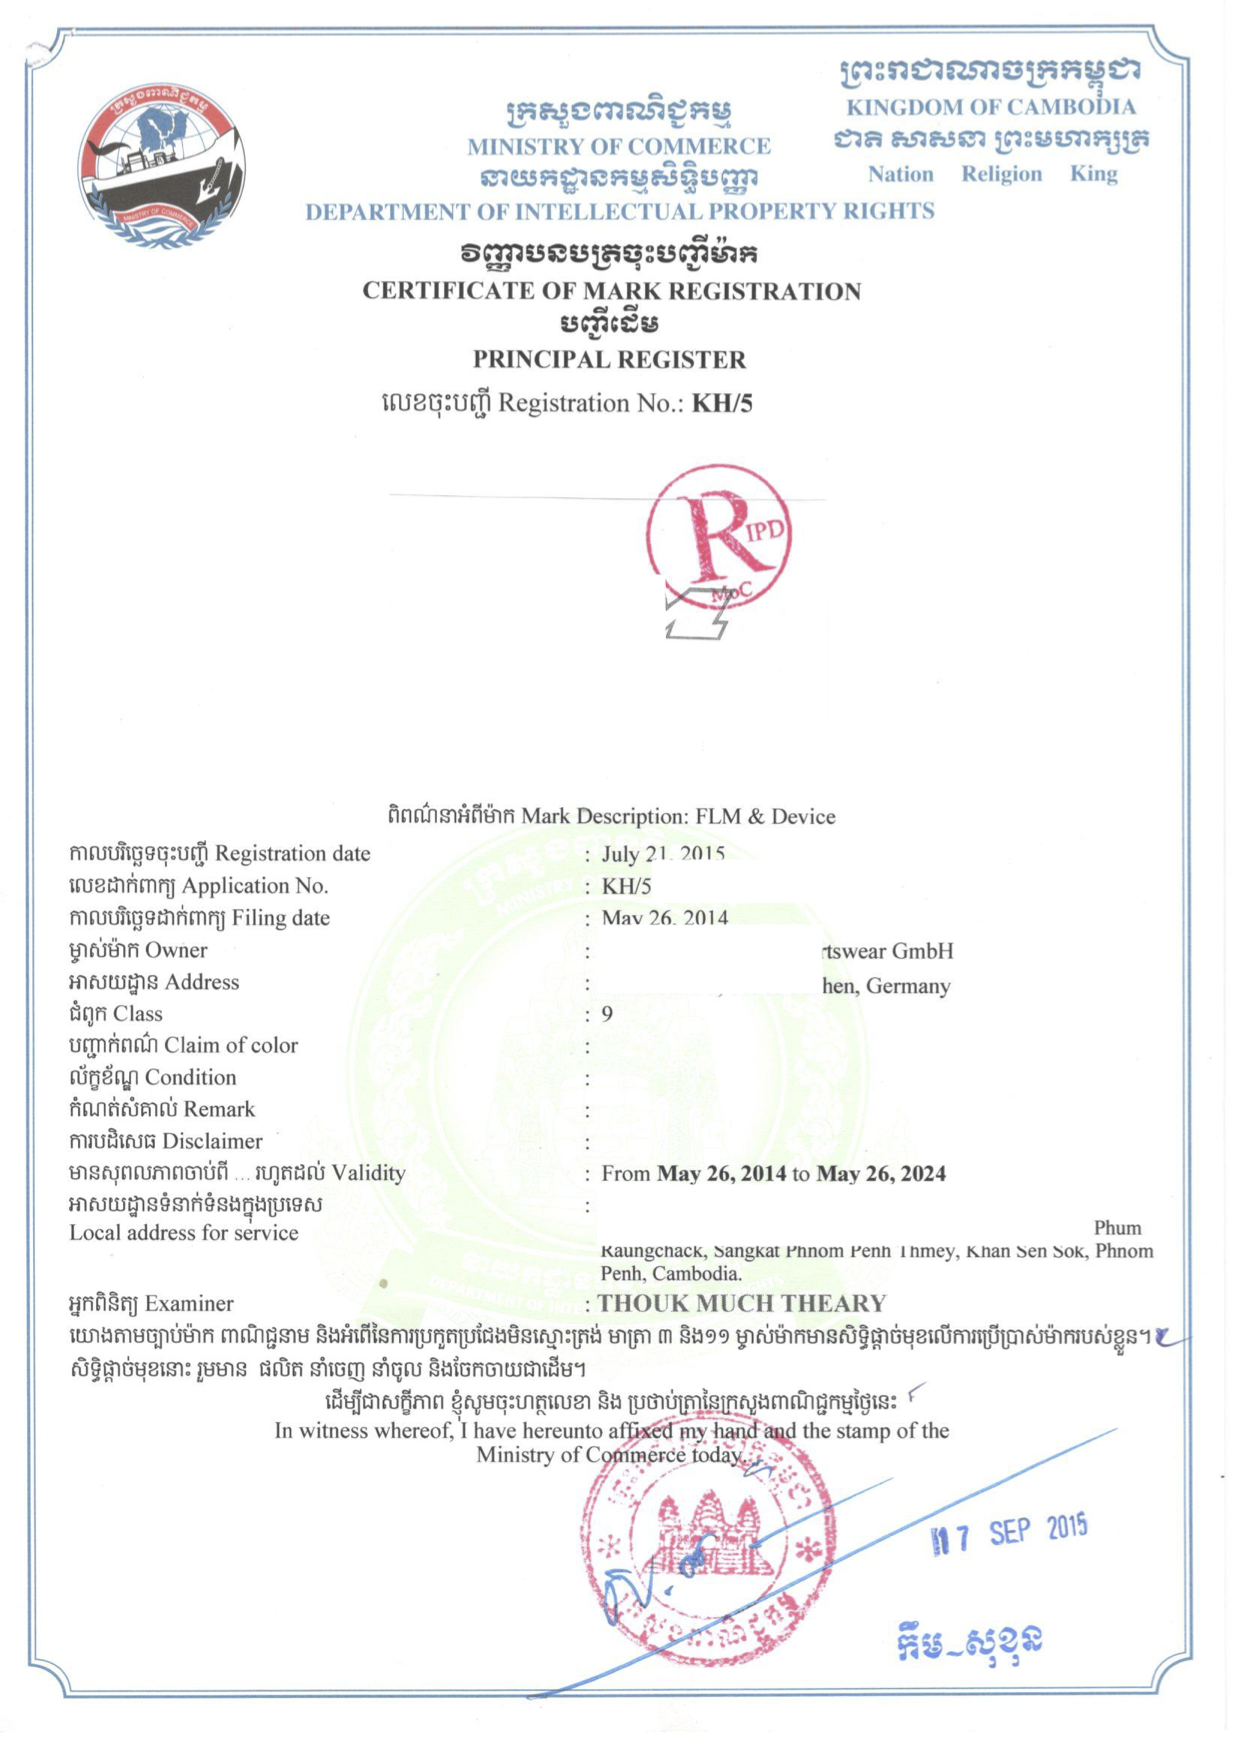 International trademark registration - Sample of trademark certificate in Cambodia